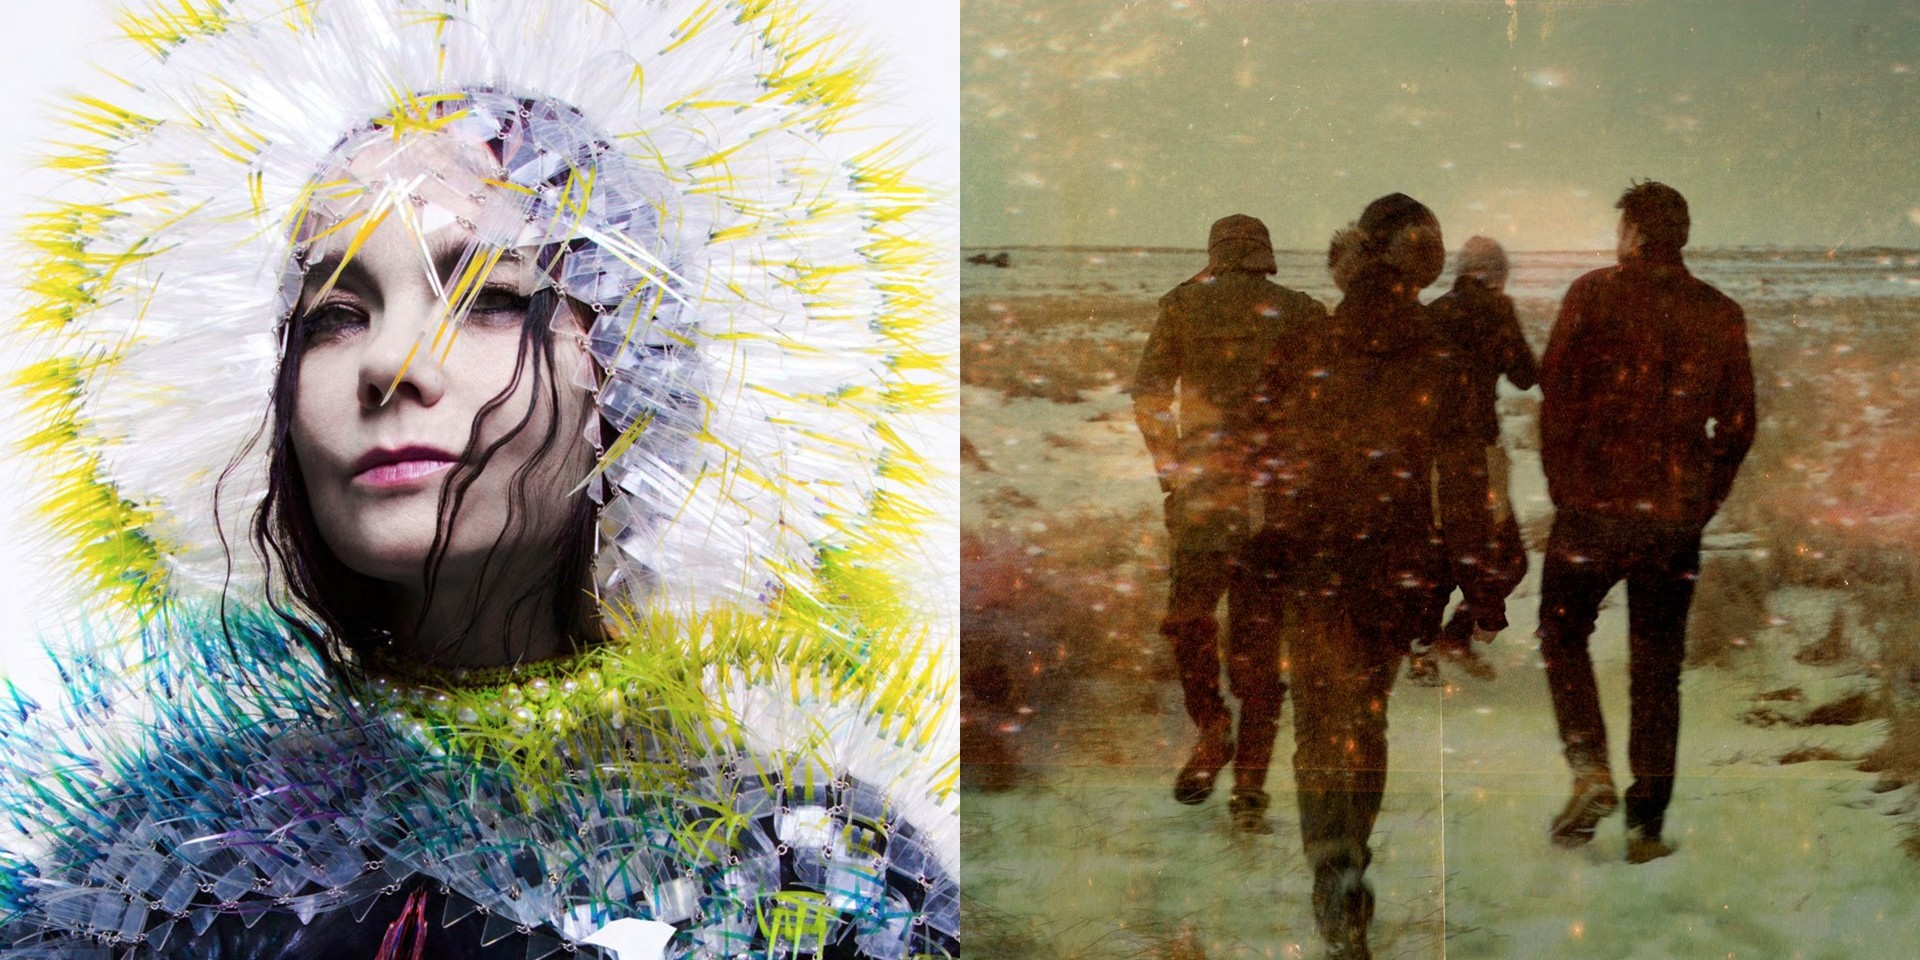 The Projector to screen movies featuring Bjork, Sigur Ros, Michael Jackson this month